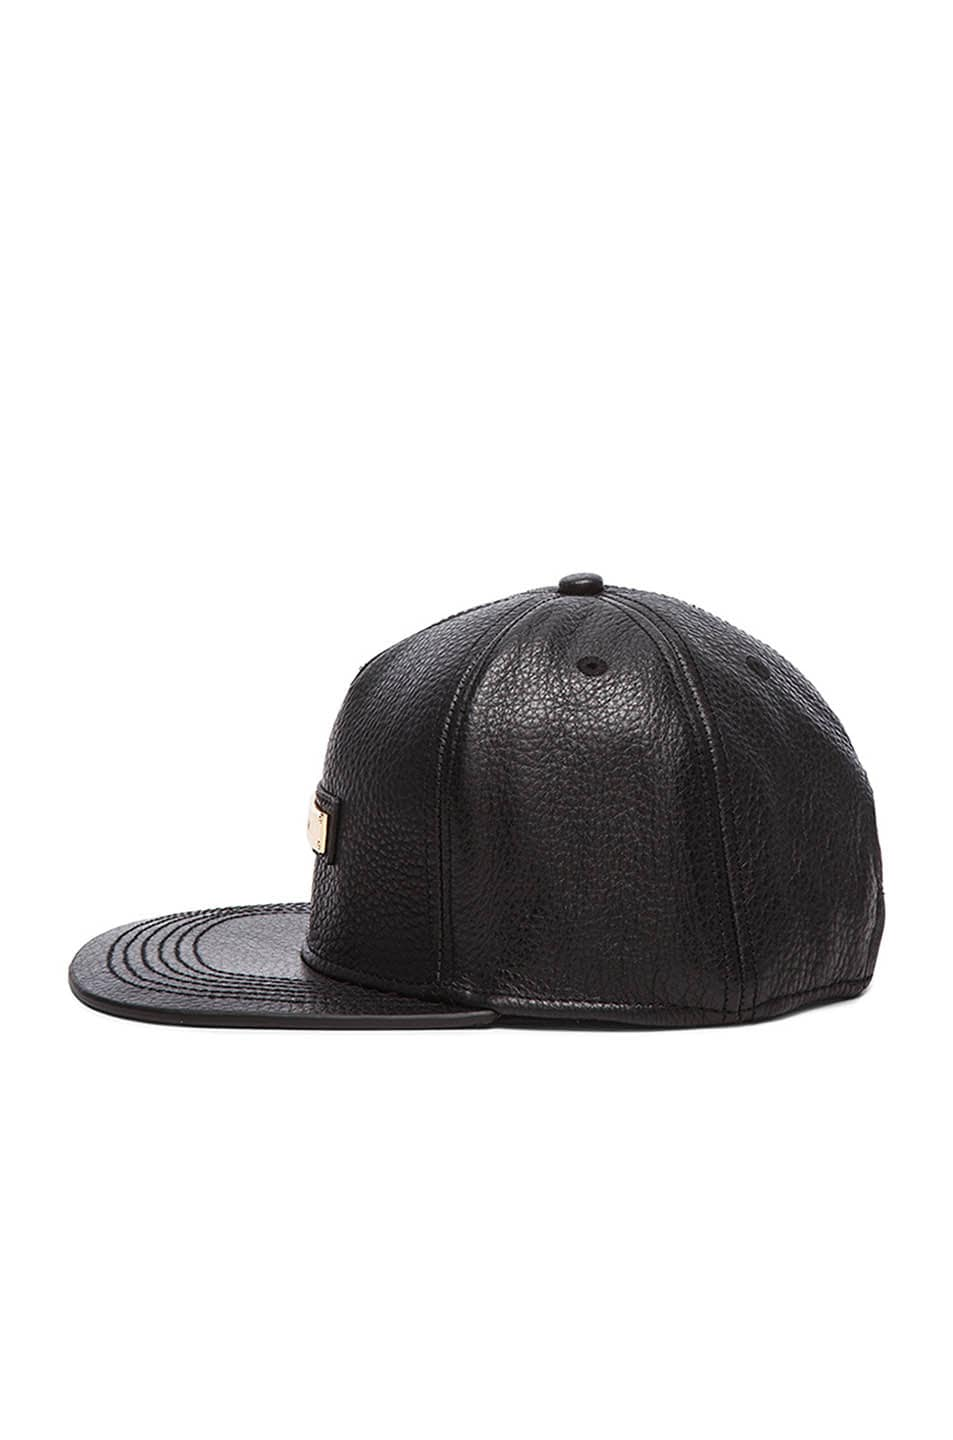 Image 3 of Buscemi Screwback Hat in Black